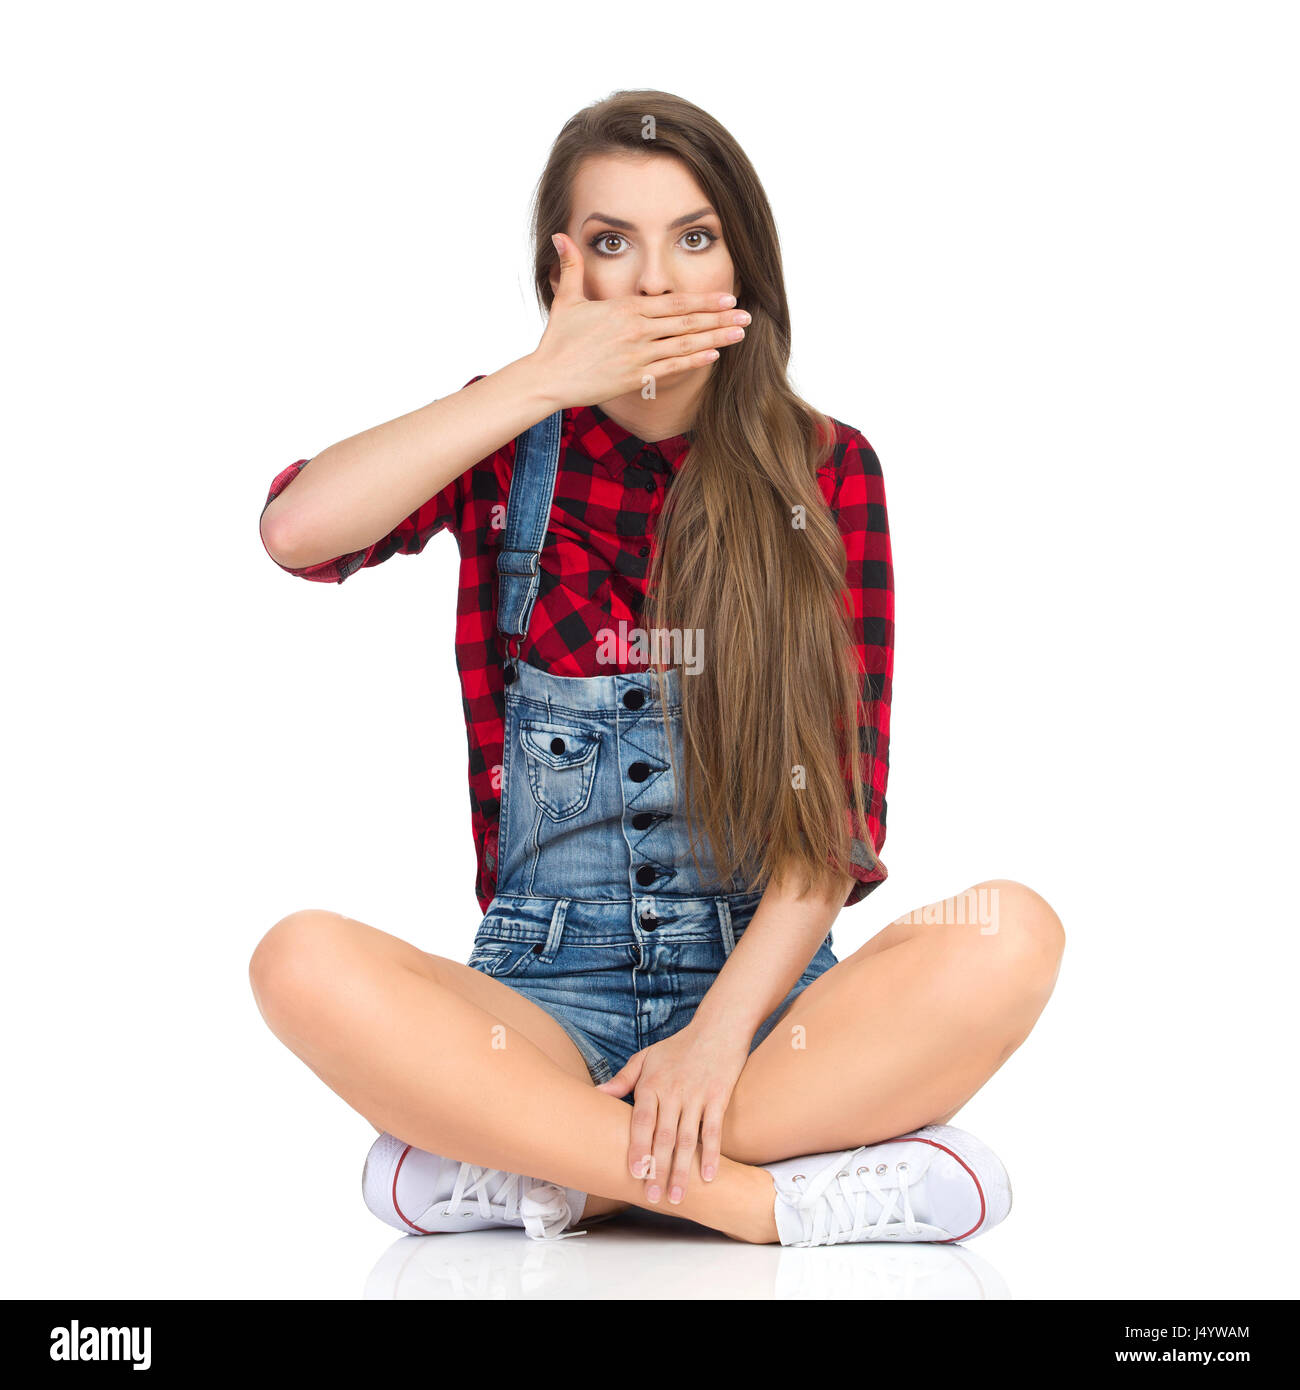 Young woman in red lumberjack shirt, jeans shorts and white sneakers sitting on a floor with legs crossed and holding - Stock Image